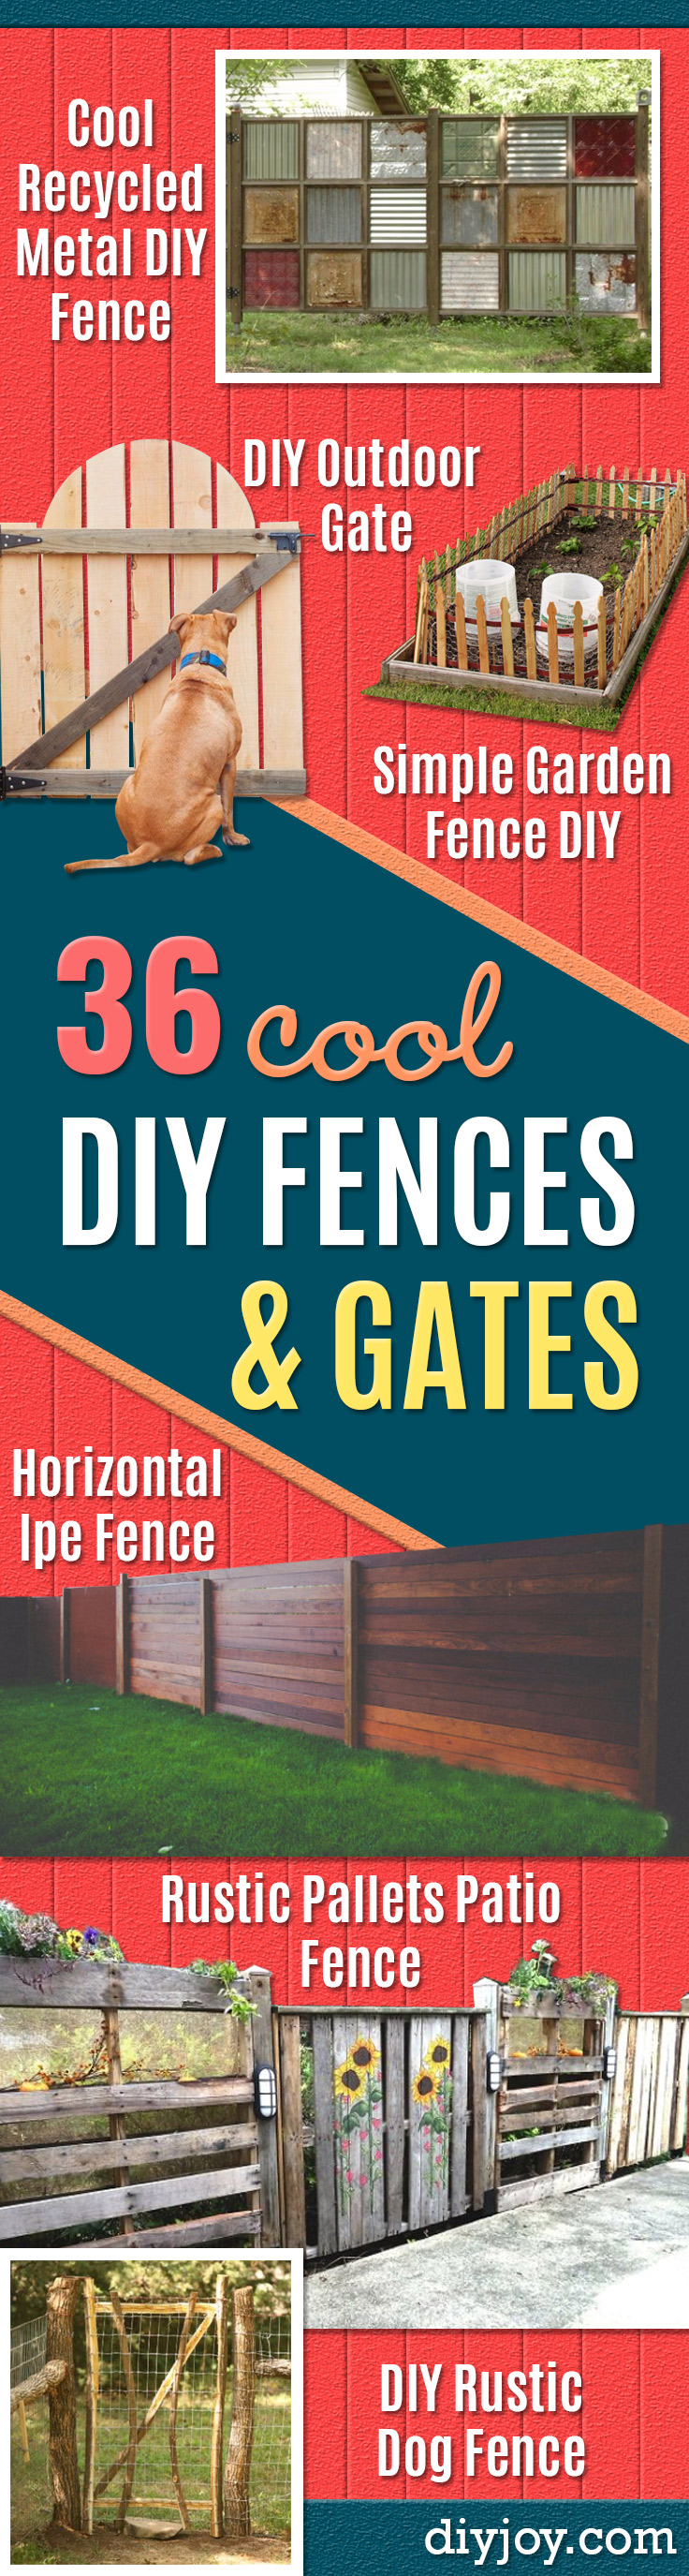 DIY Fences and Gates - How To Make Easy Fence and Gate Project for Backyard and Home - Step by Step Tutorial and Ideas for Painting, Updating and Making Fences and DIY Gate - Cool Outdoors and Yard Projects http://diyjoy.com/diy-fences- gates